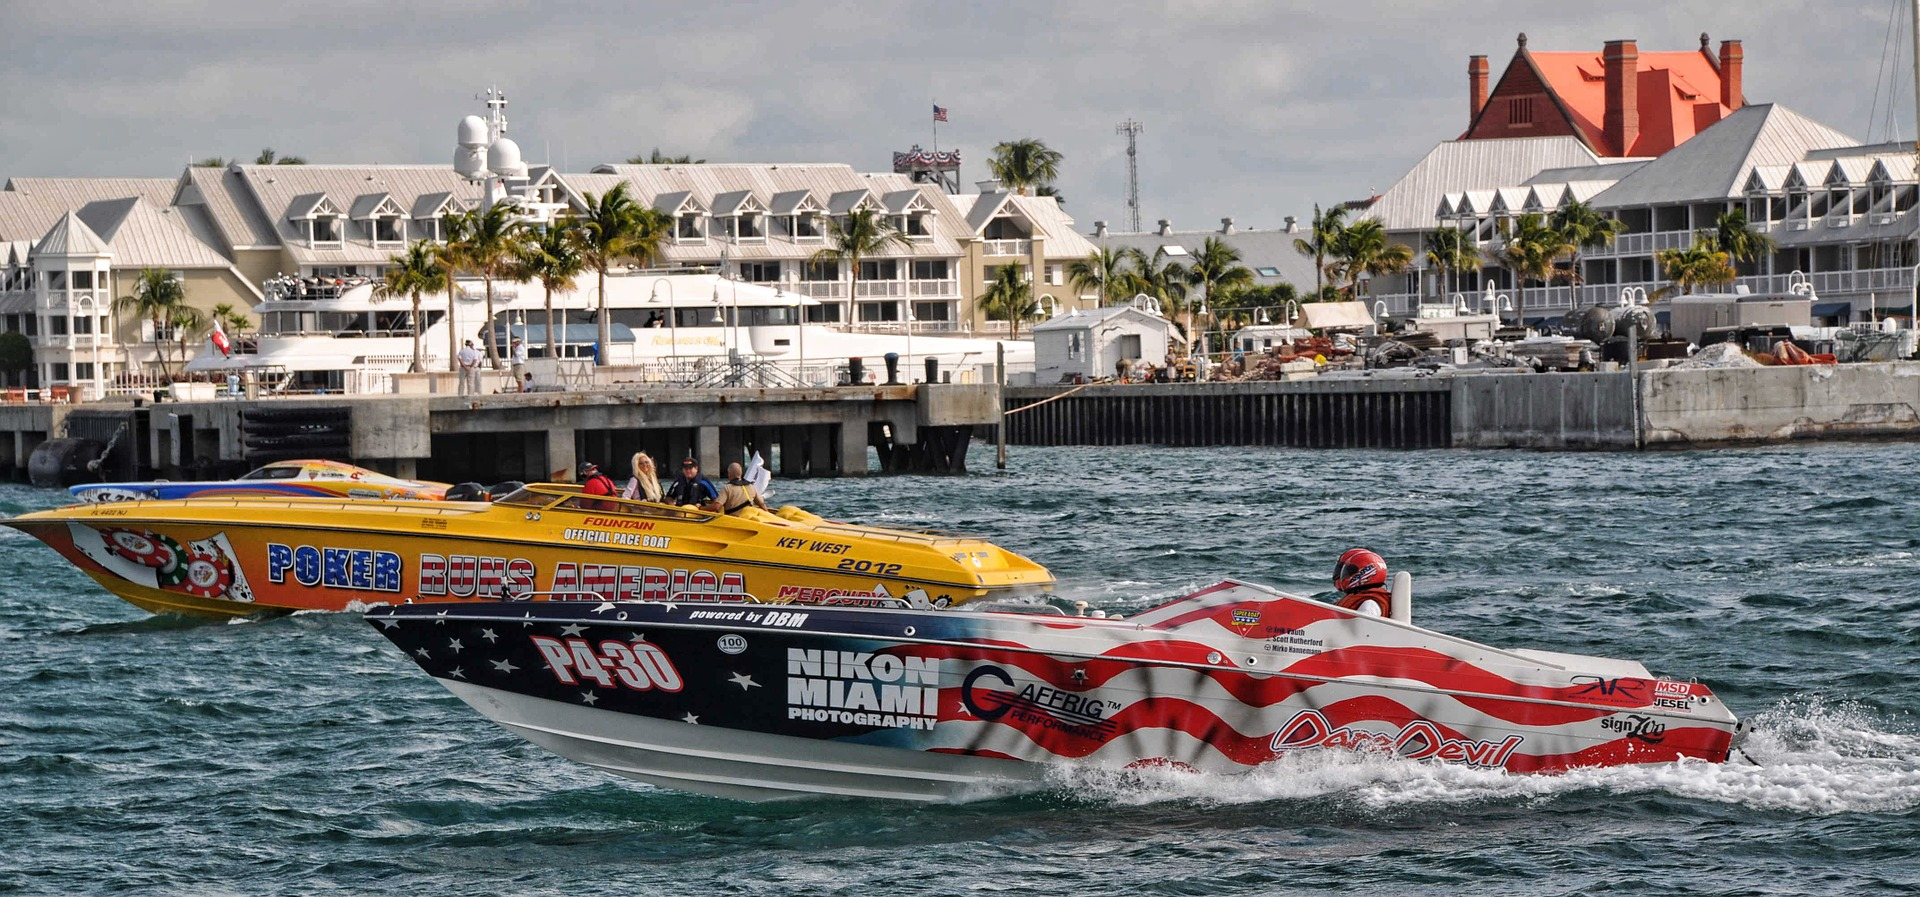 Superboat races Key West - credit: Pixabay.com